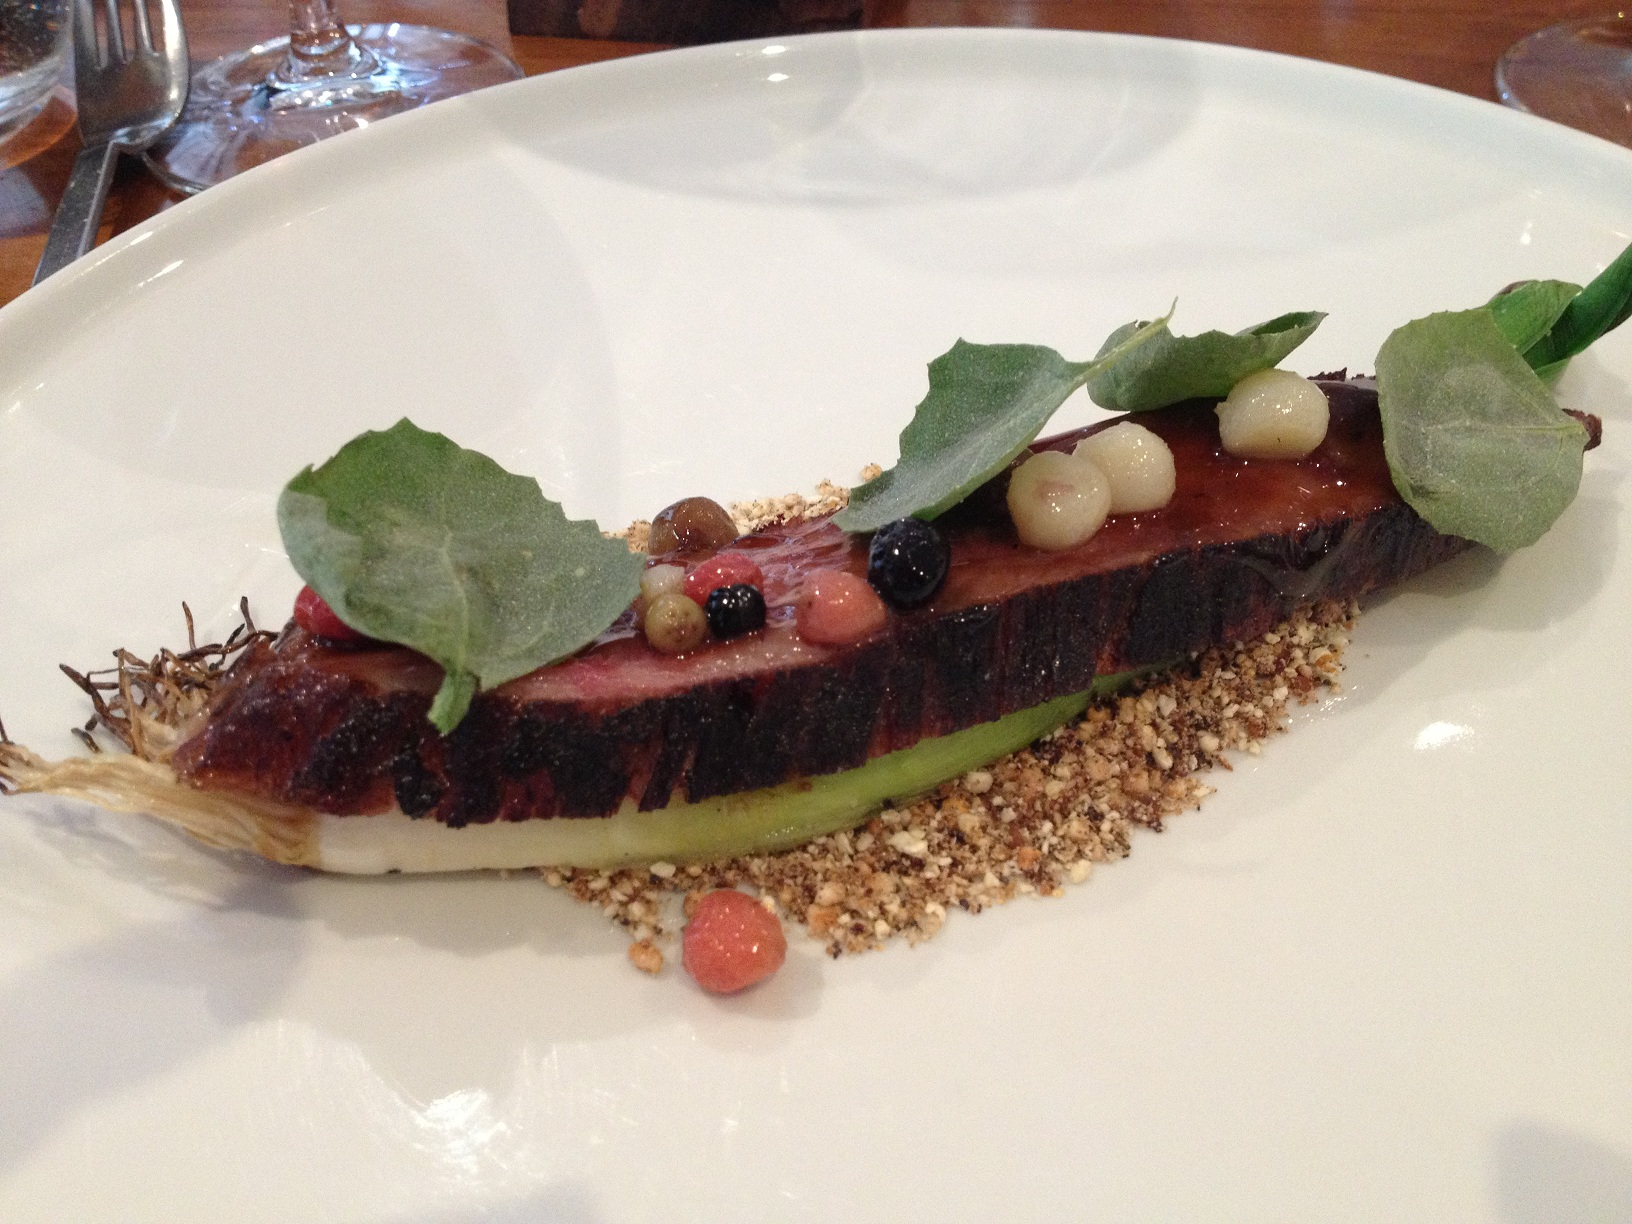 molasses glazed beef, saltbush, native berries, leek resized